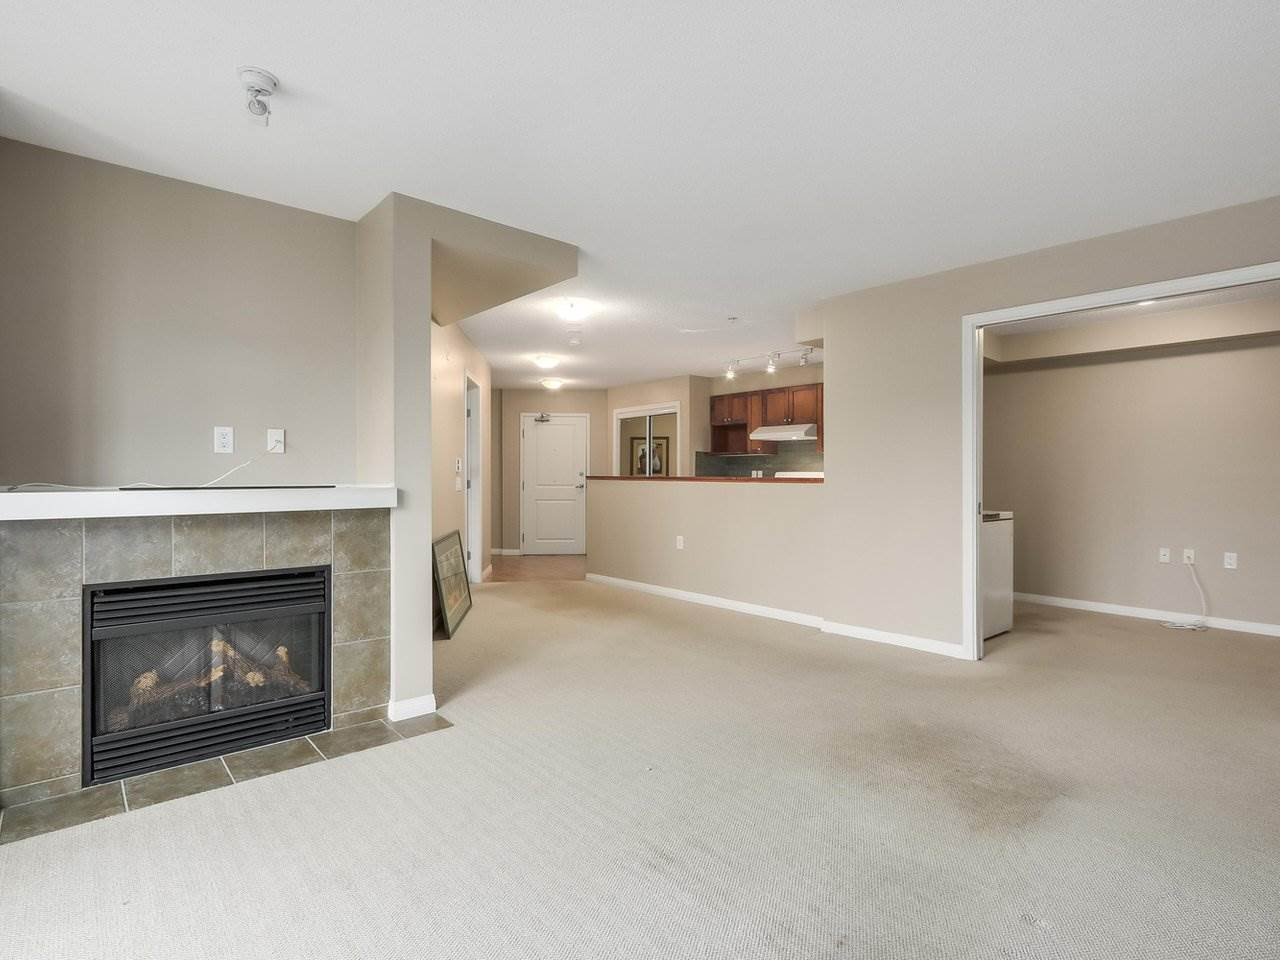 Photo 7: Photos: 226 8880 202 Street in Langley: Walnut Grove Condo for sale : MLS® # R2234850